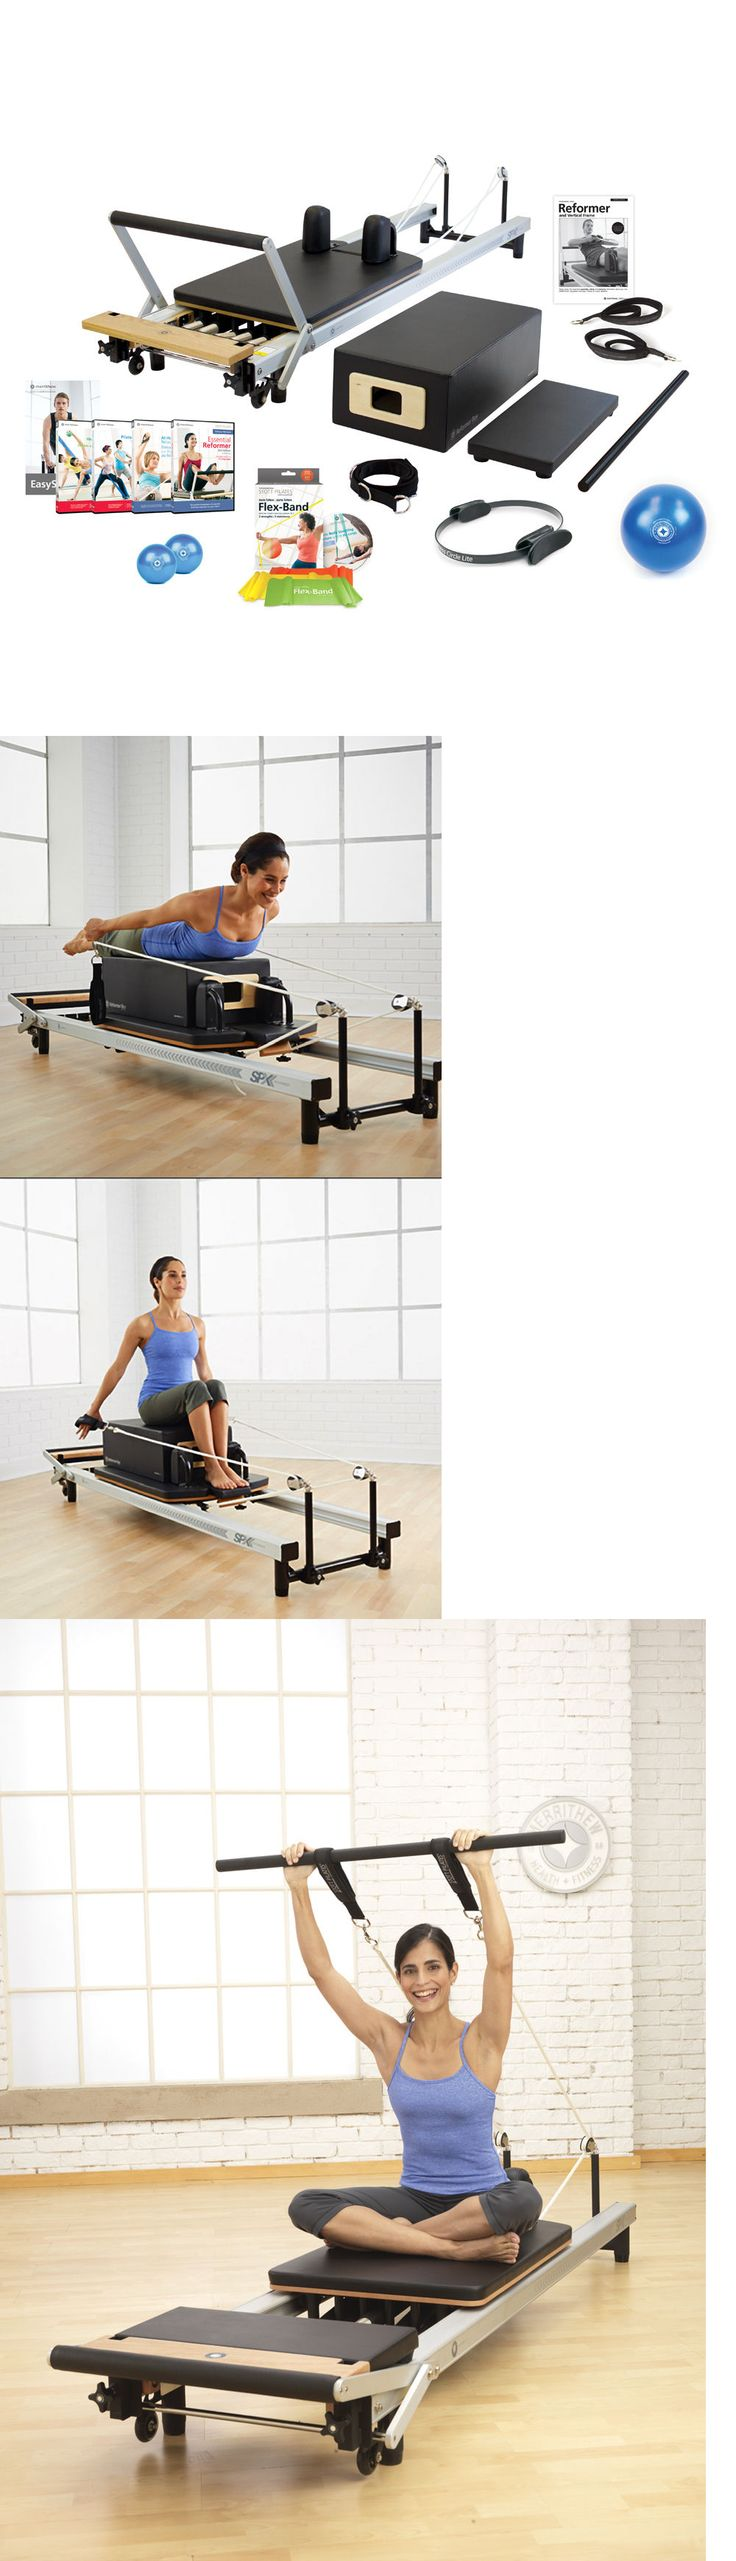 Pilates Tables 179807: Stott Pilates Spx Reformer W Free Deluxe Bundle St-11008 | New! -> BUY IT NOW ONLY: $2549 on eBay!